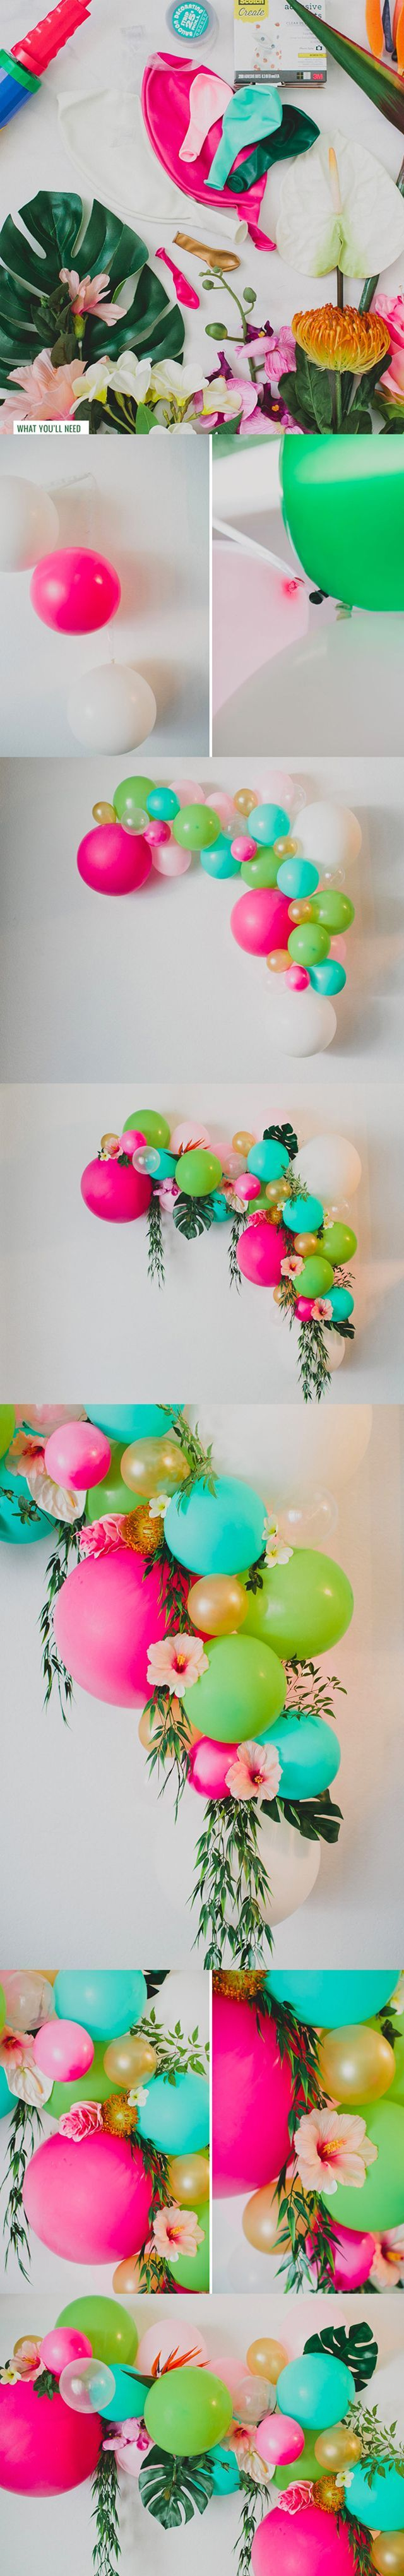 94 best images about balloon decor step by step on